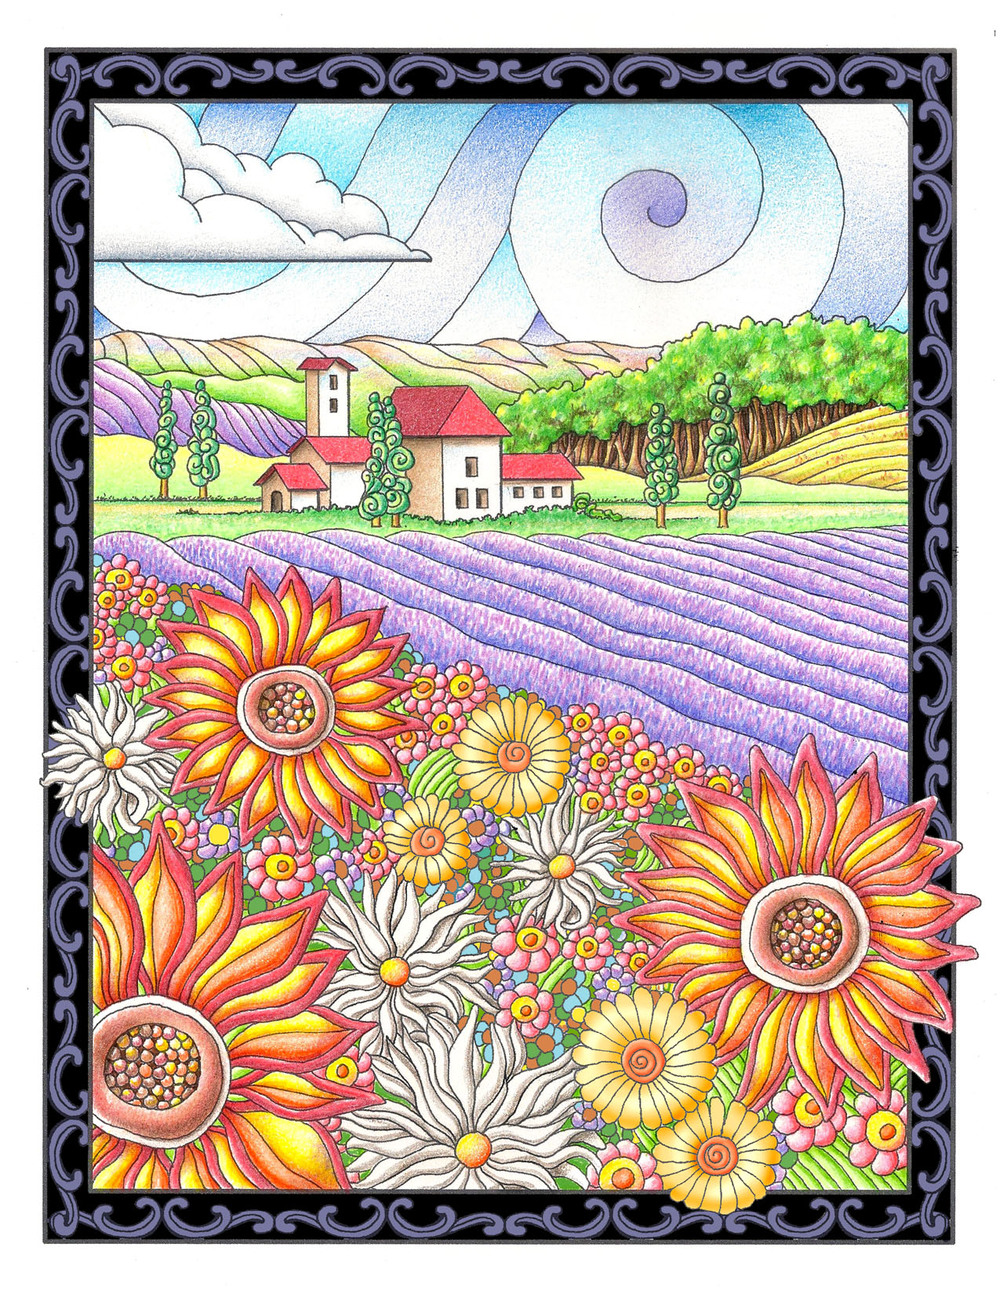 Toms Tuscan Field from Calendar.jpg